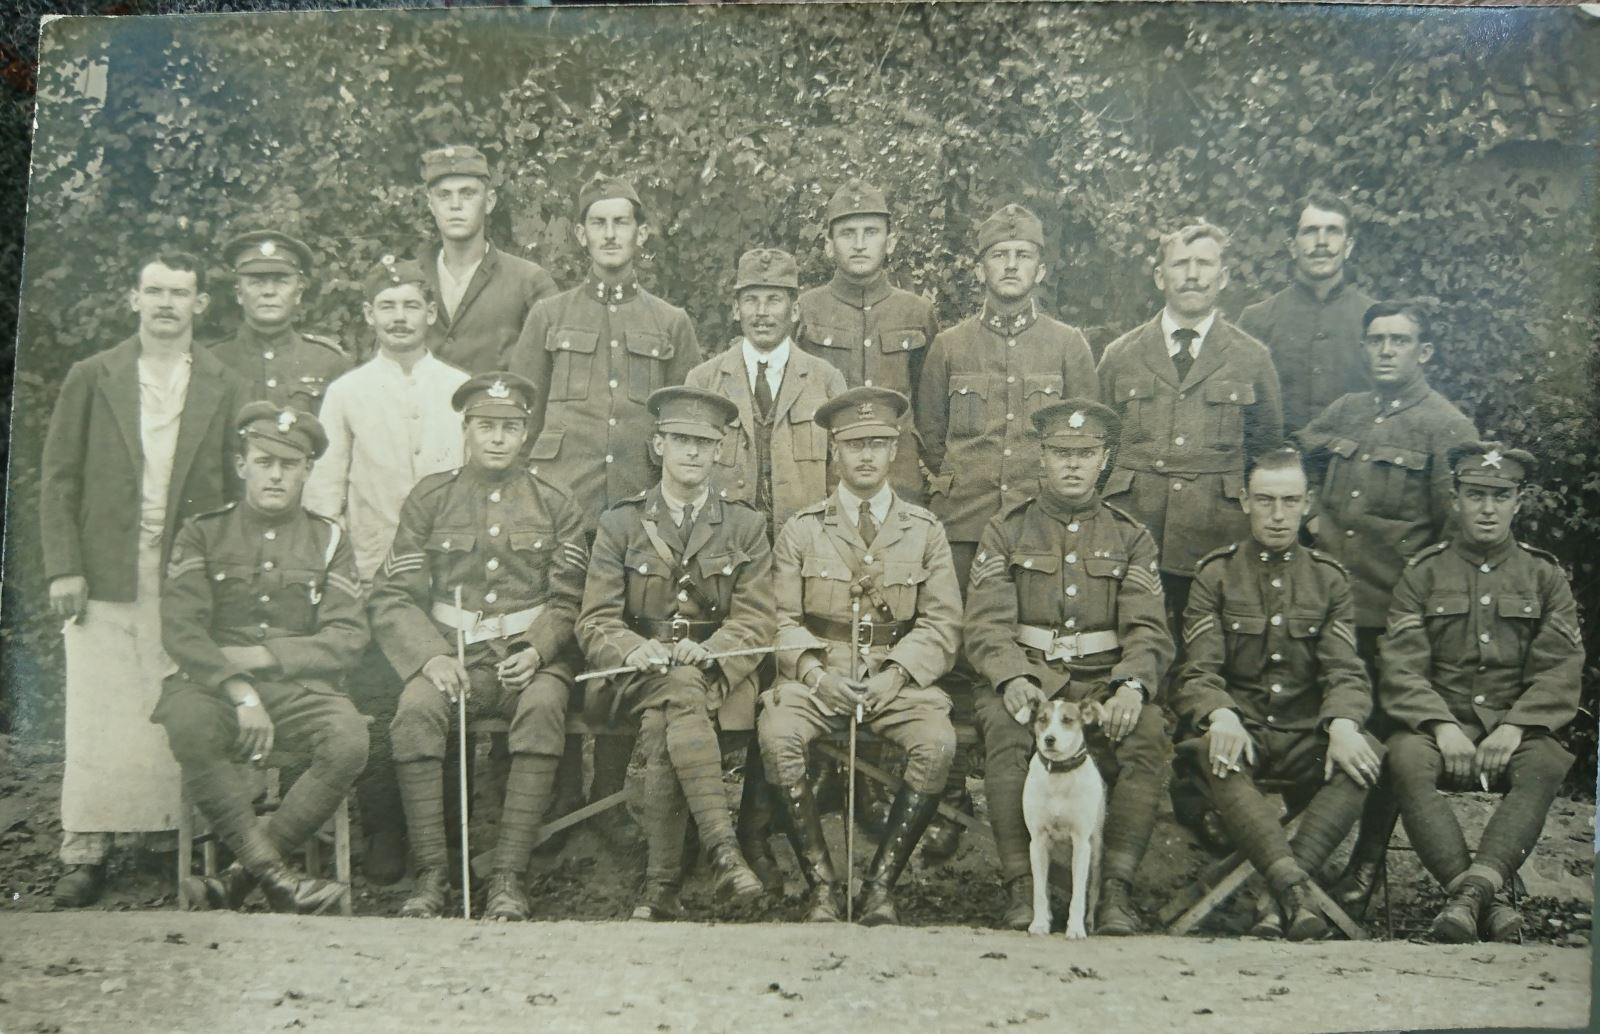 A Graves registration team... Those who locate., identify and exhumed Battlefield Graves in 1919/21. Capt SG Outwin, leader of this group seated centre right in lighter coloured uniform